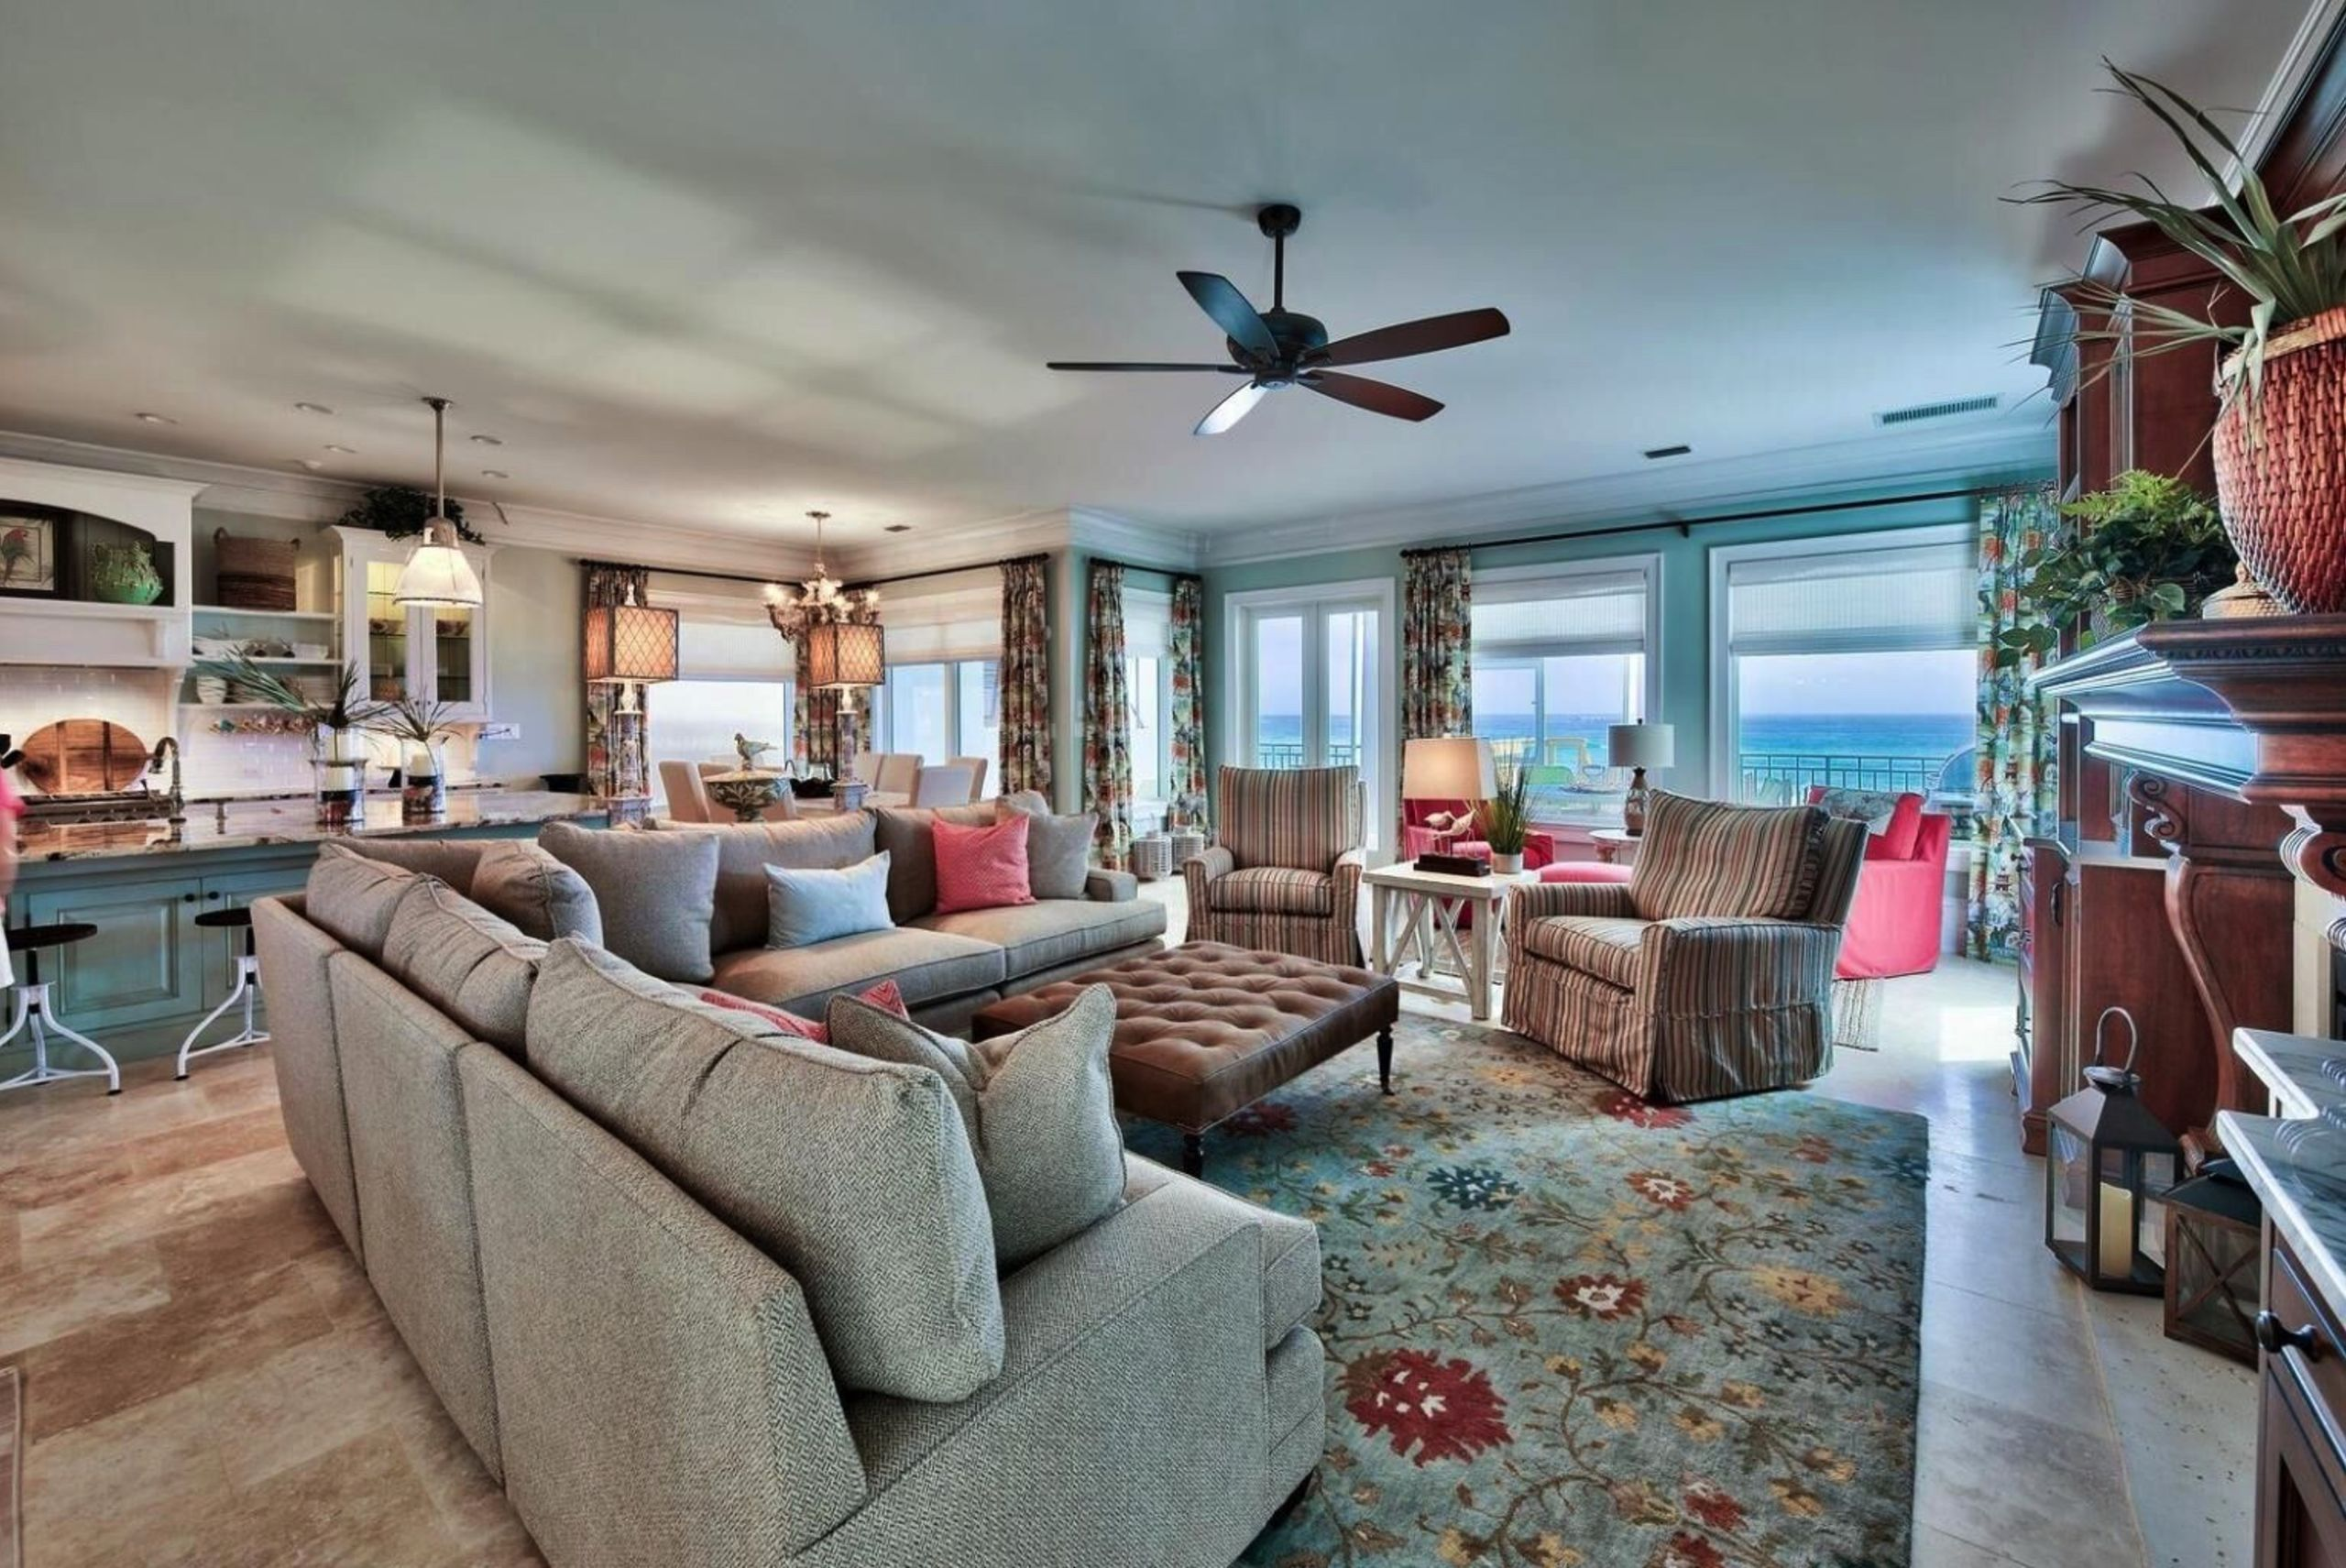 Beachfront living lends itself to lazy days by the seashore and relaxing nights with family.